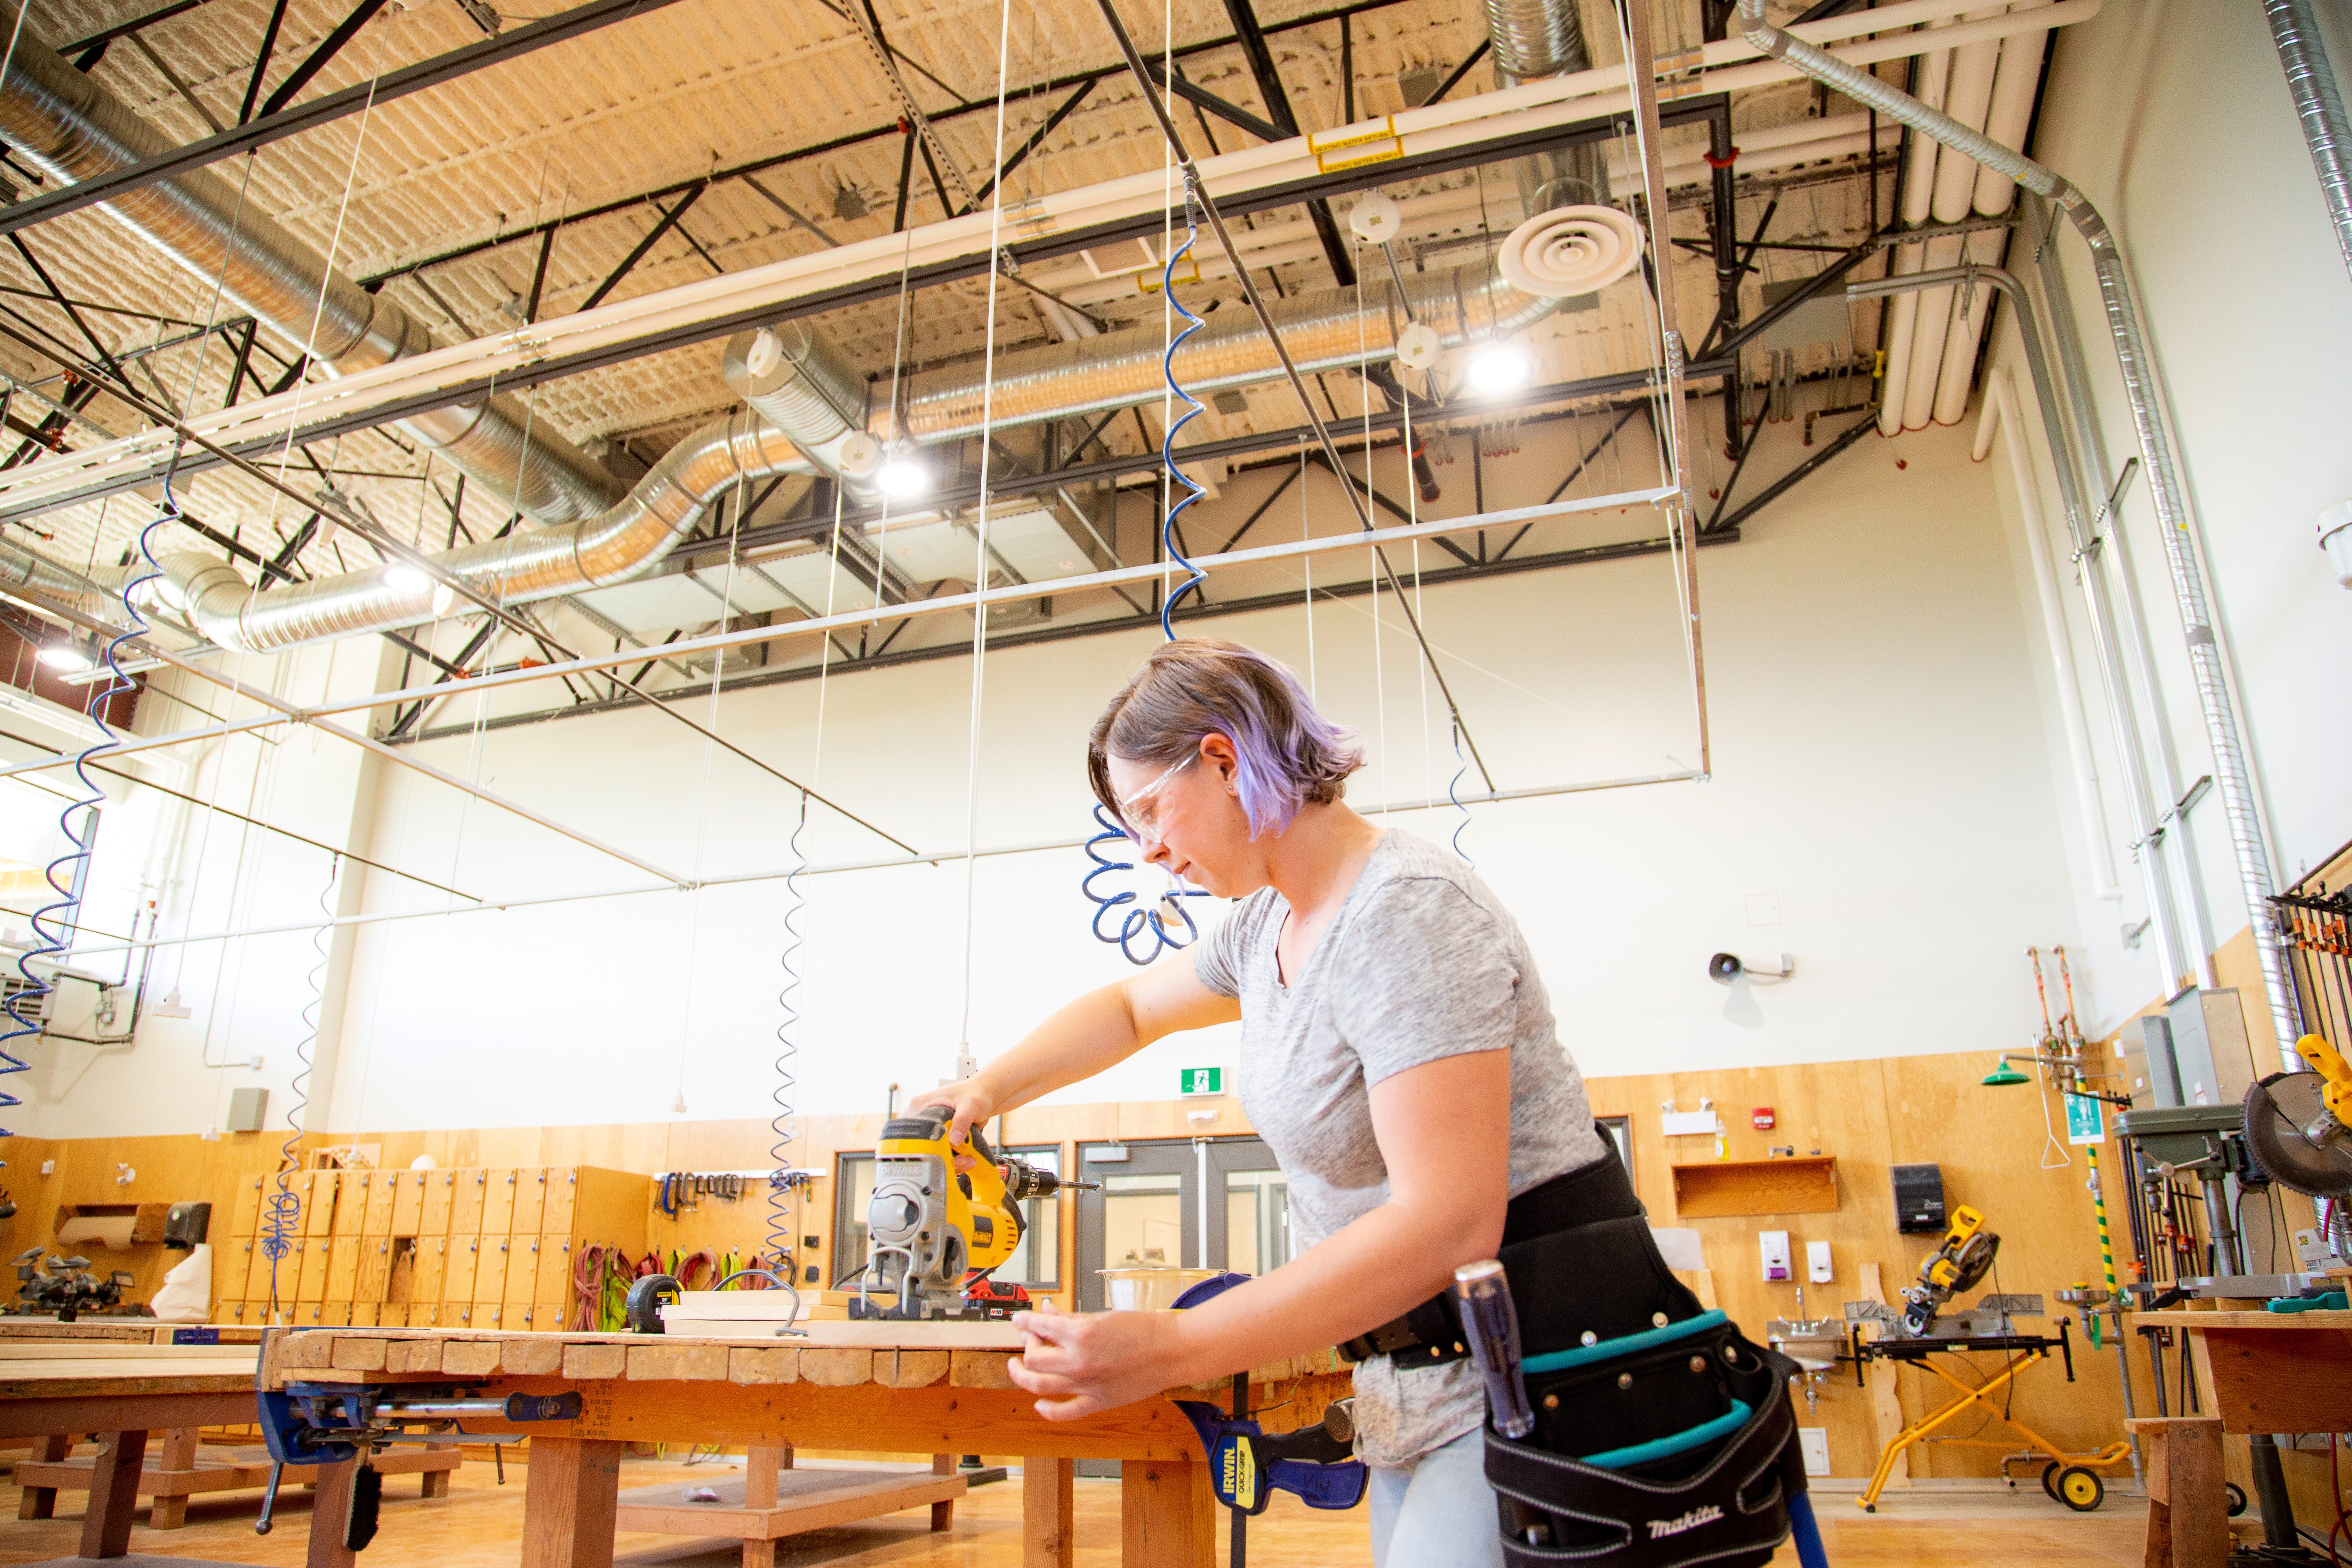 Explore your future in the trades or applied technology fields   Vancouver Island University